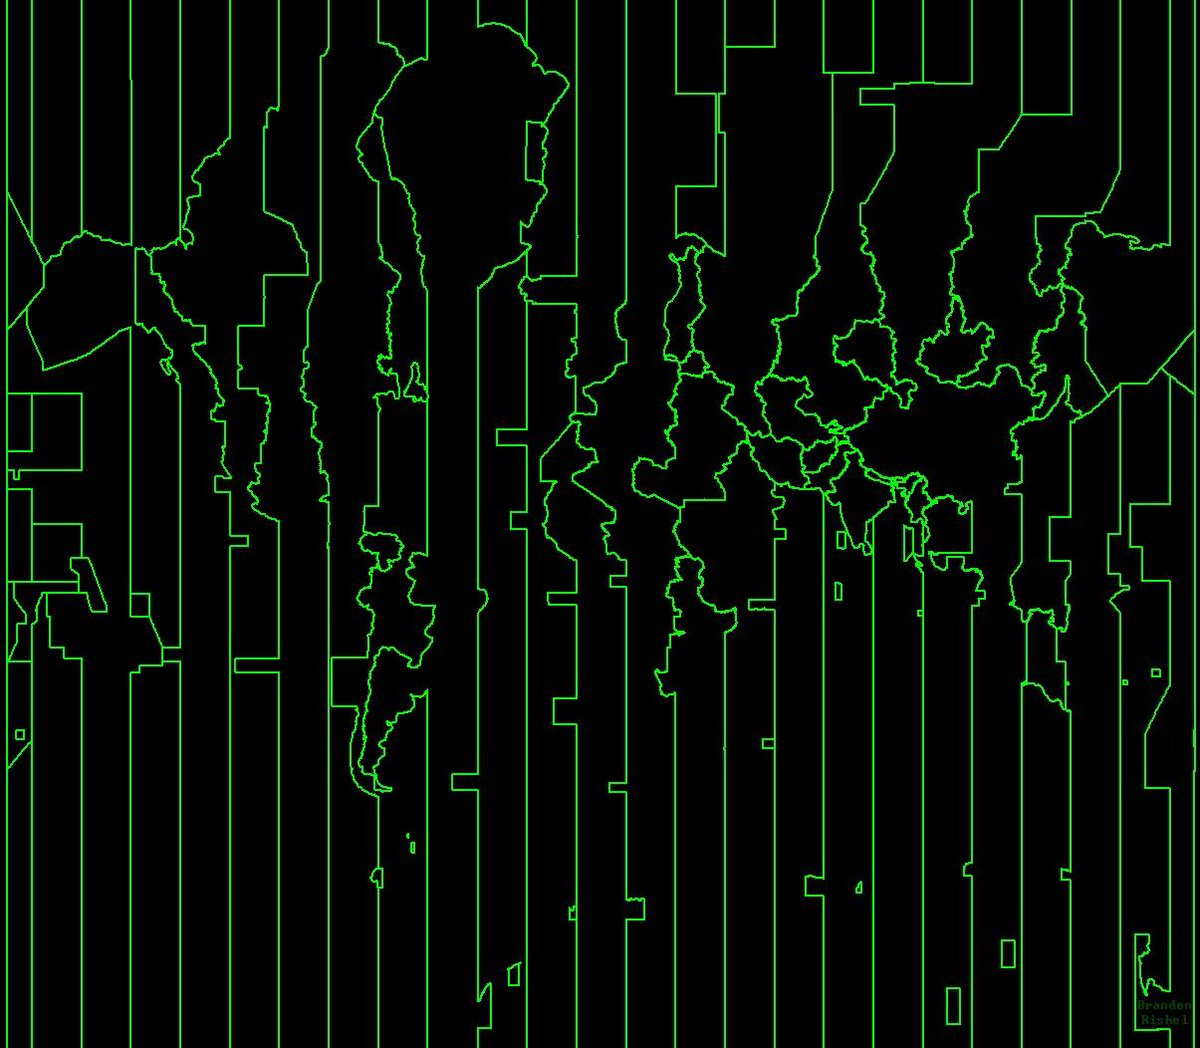 A map of the world made from timezones